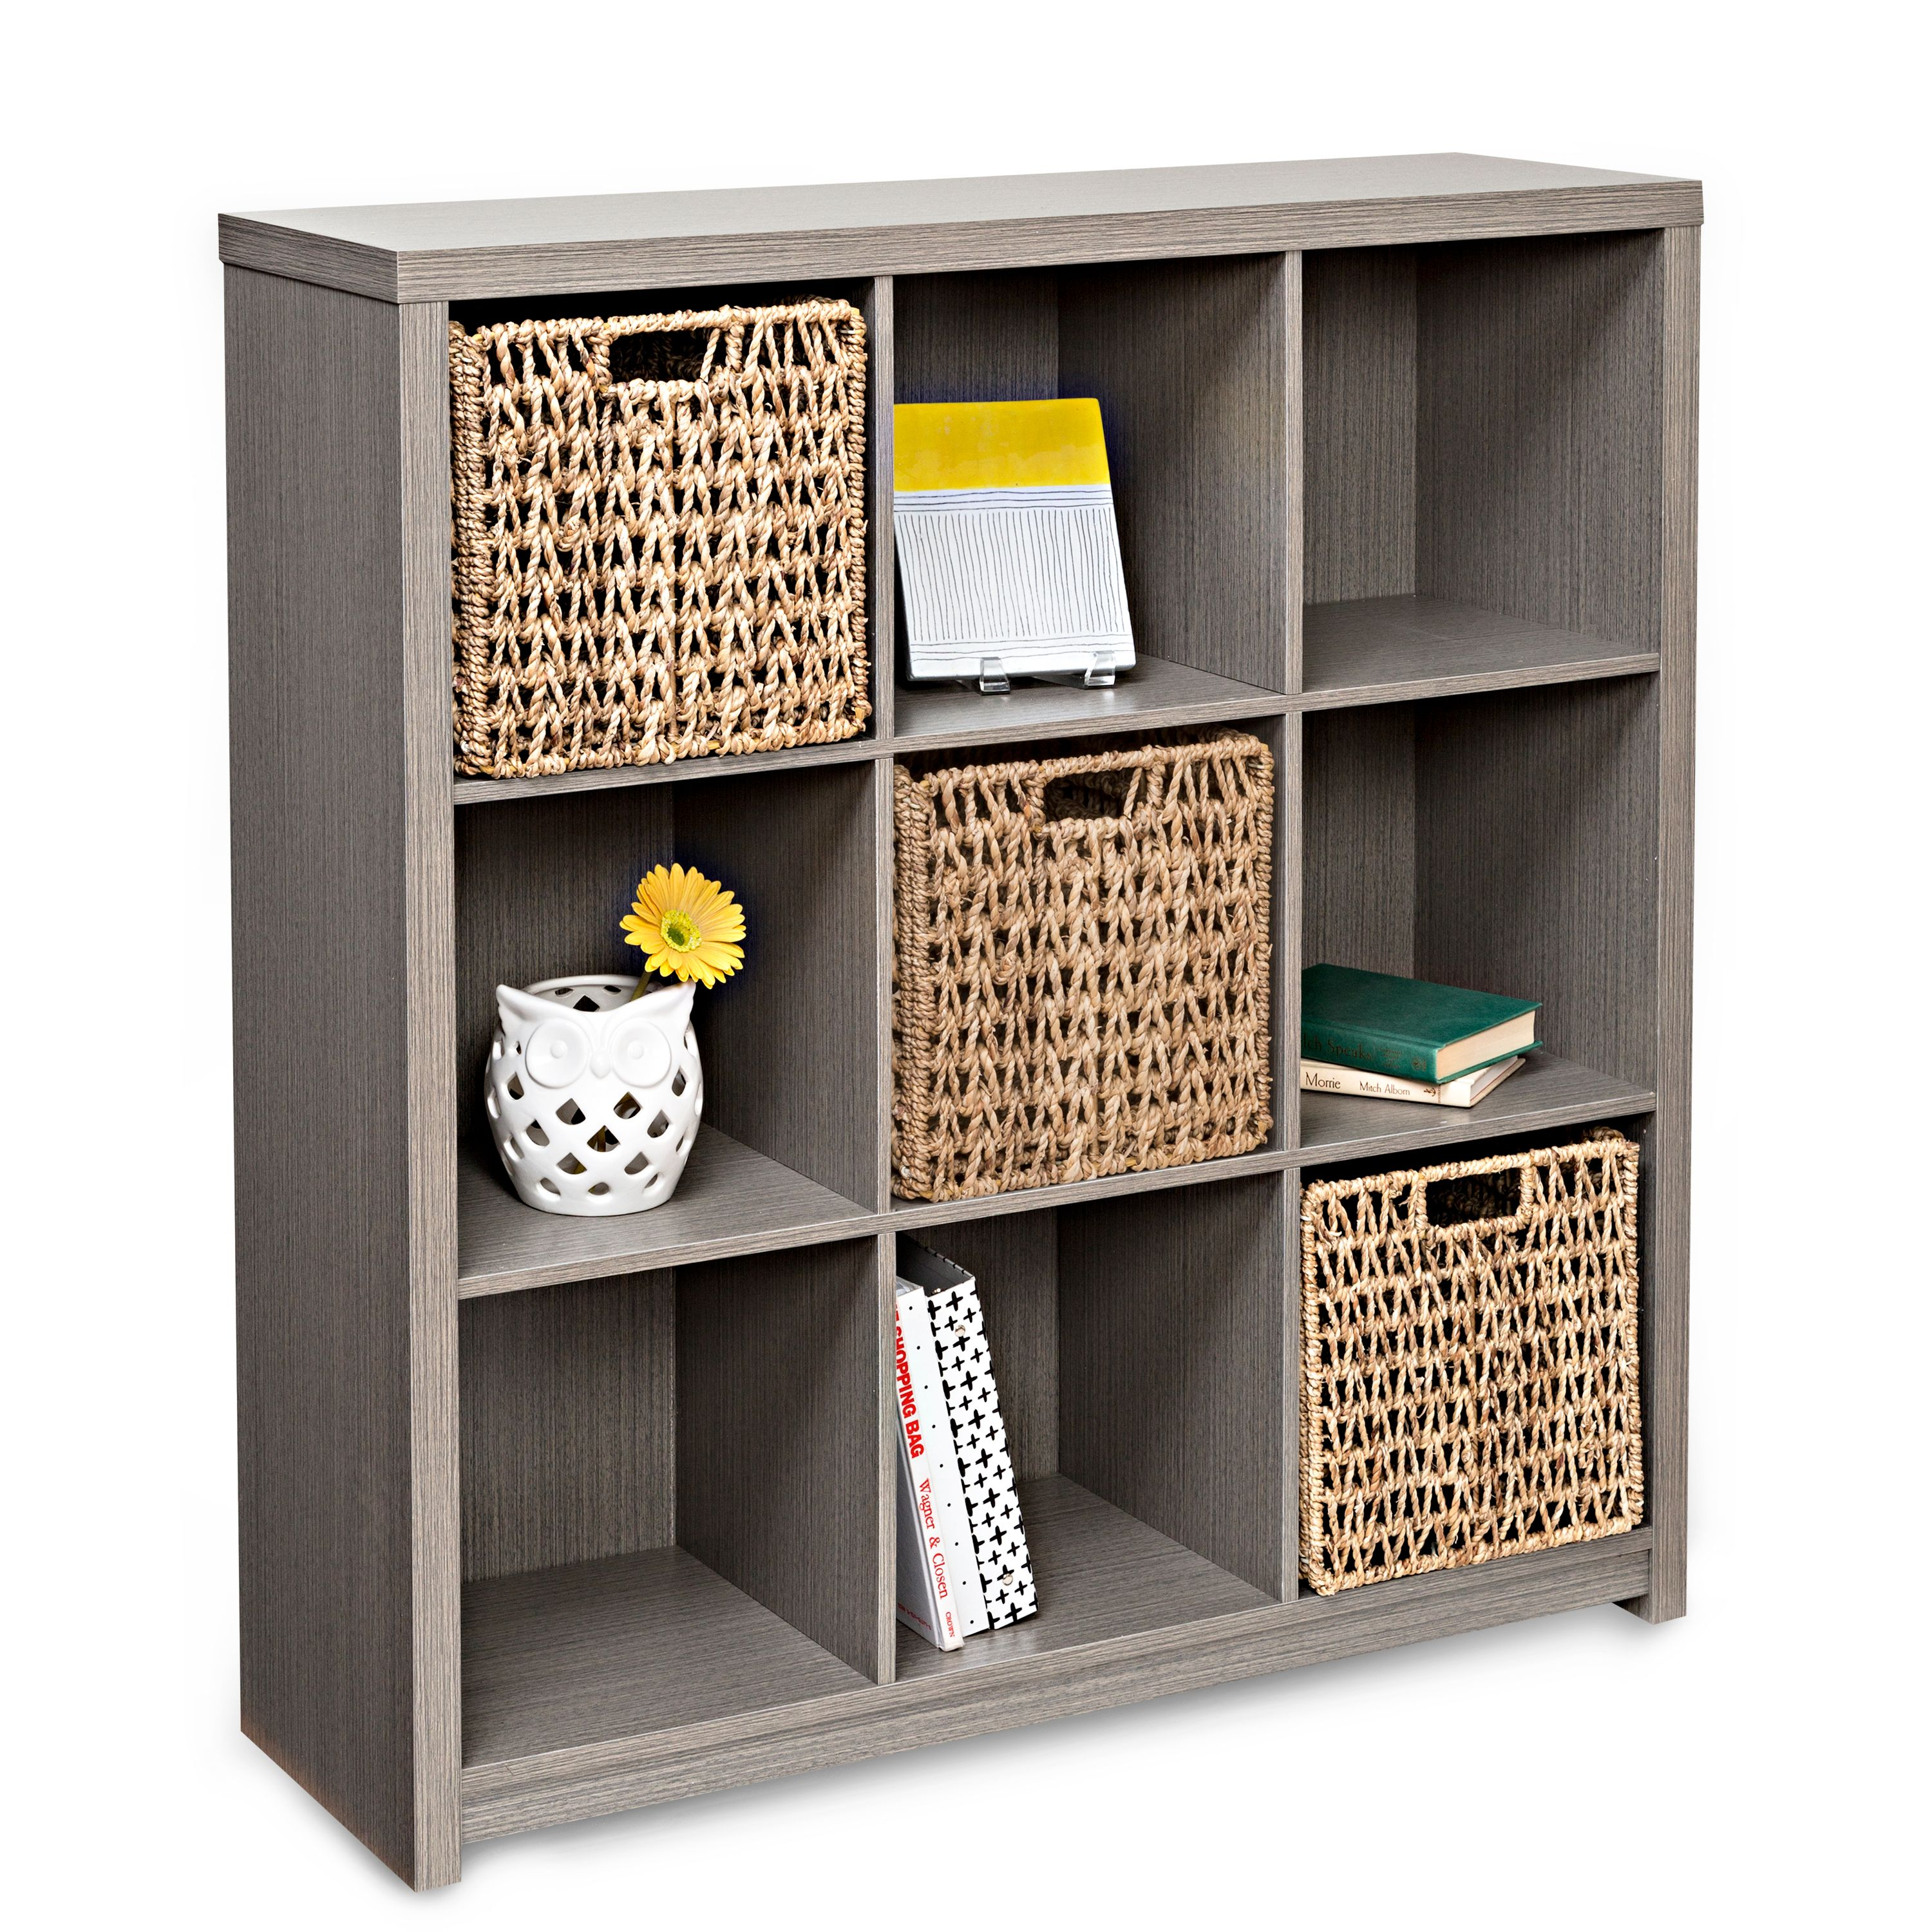 Exceptionnel Honey Can Do Premium Laminate Storage Cube With 9 Cubes, Weathered Teak